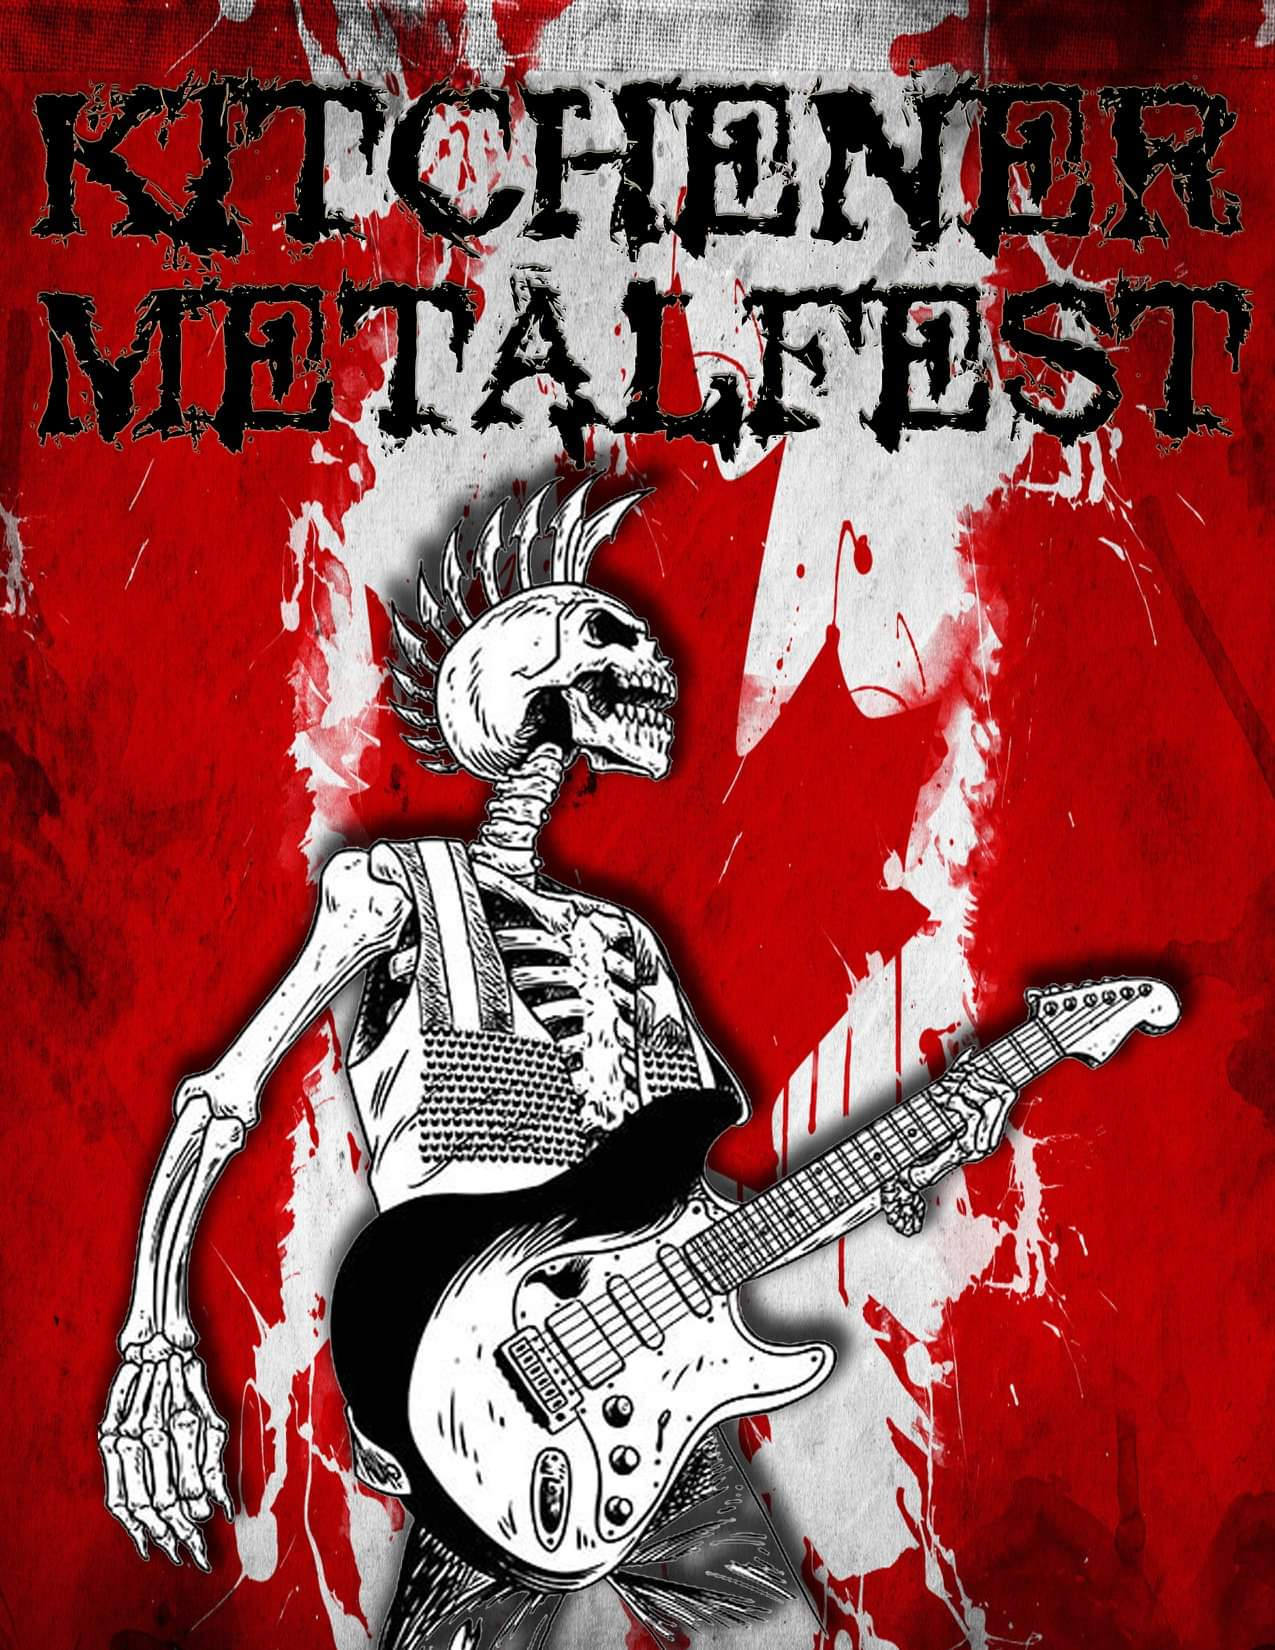 Kitchener Metalfest 2019